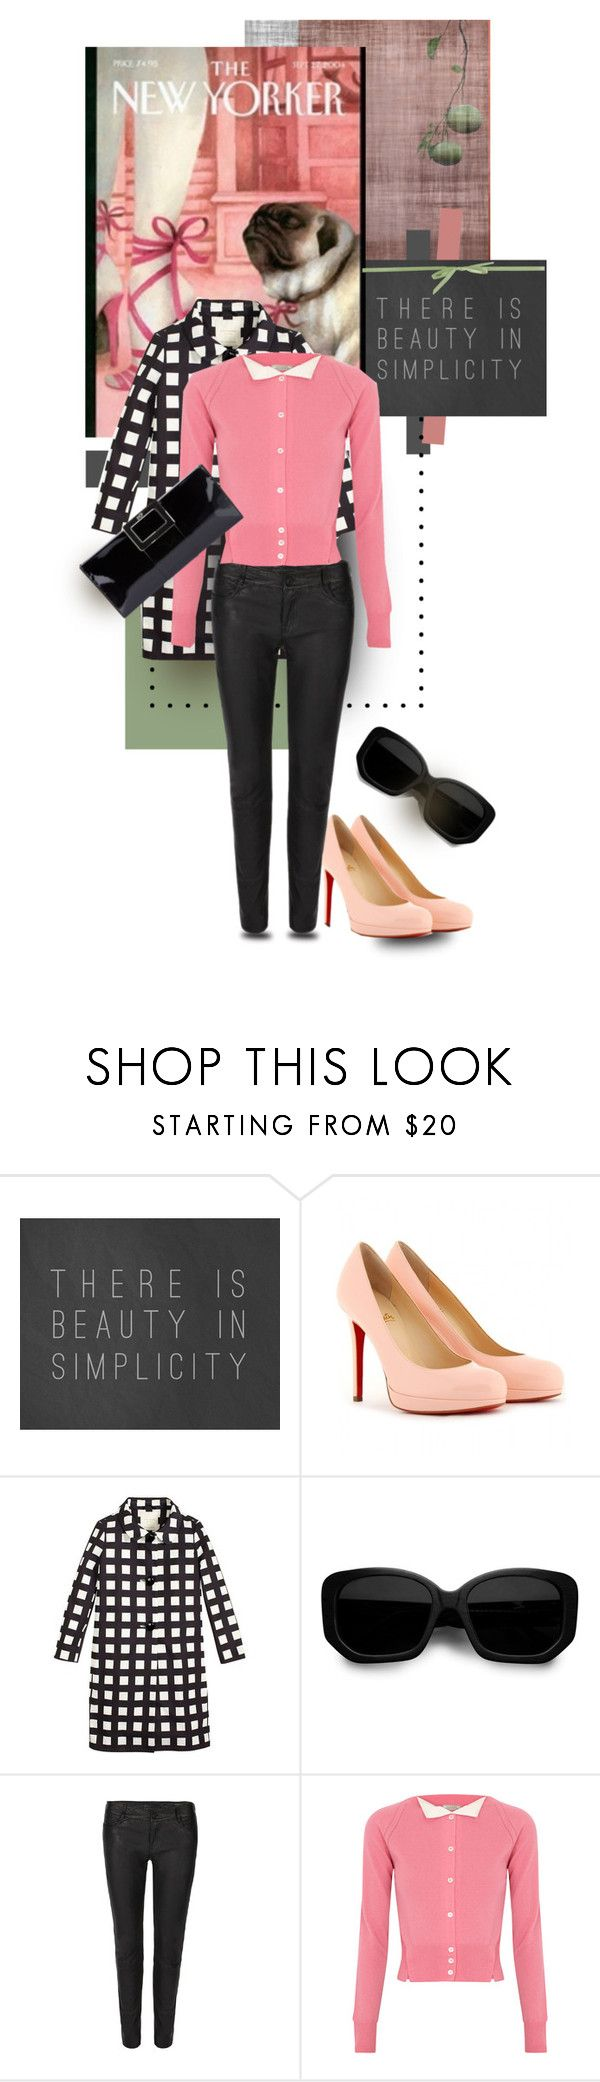 """""""Beautifully Simple"""" by mponte ❤ liked on Polyvore featuring Pomelo, Trilogy, Christian Louboutin, Kate Spade, Acne Studios, AllSaints, Nina Ricci, Roger Vivier, platform heels and patent leather handbags"""